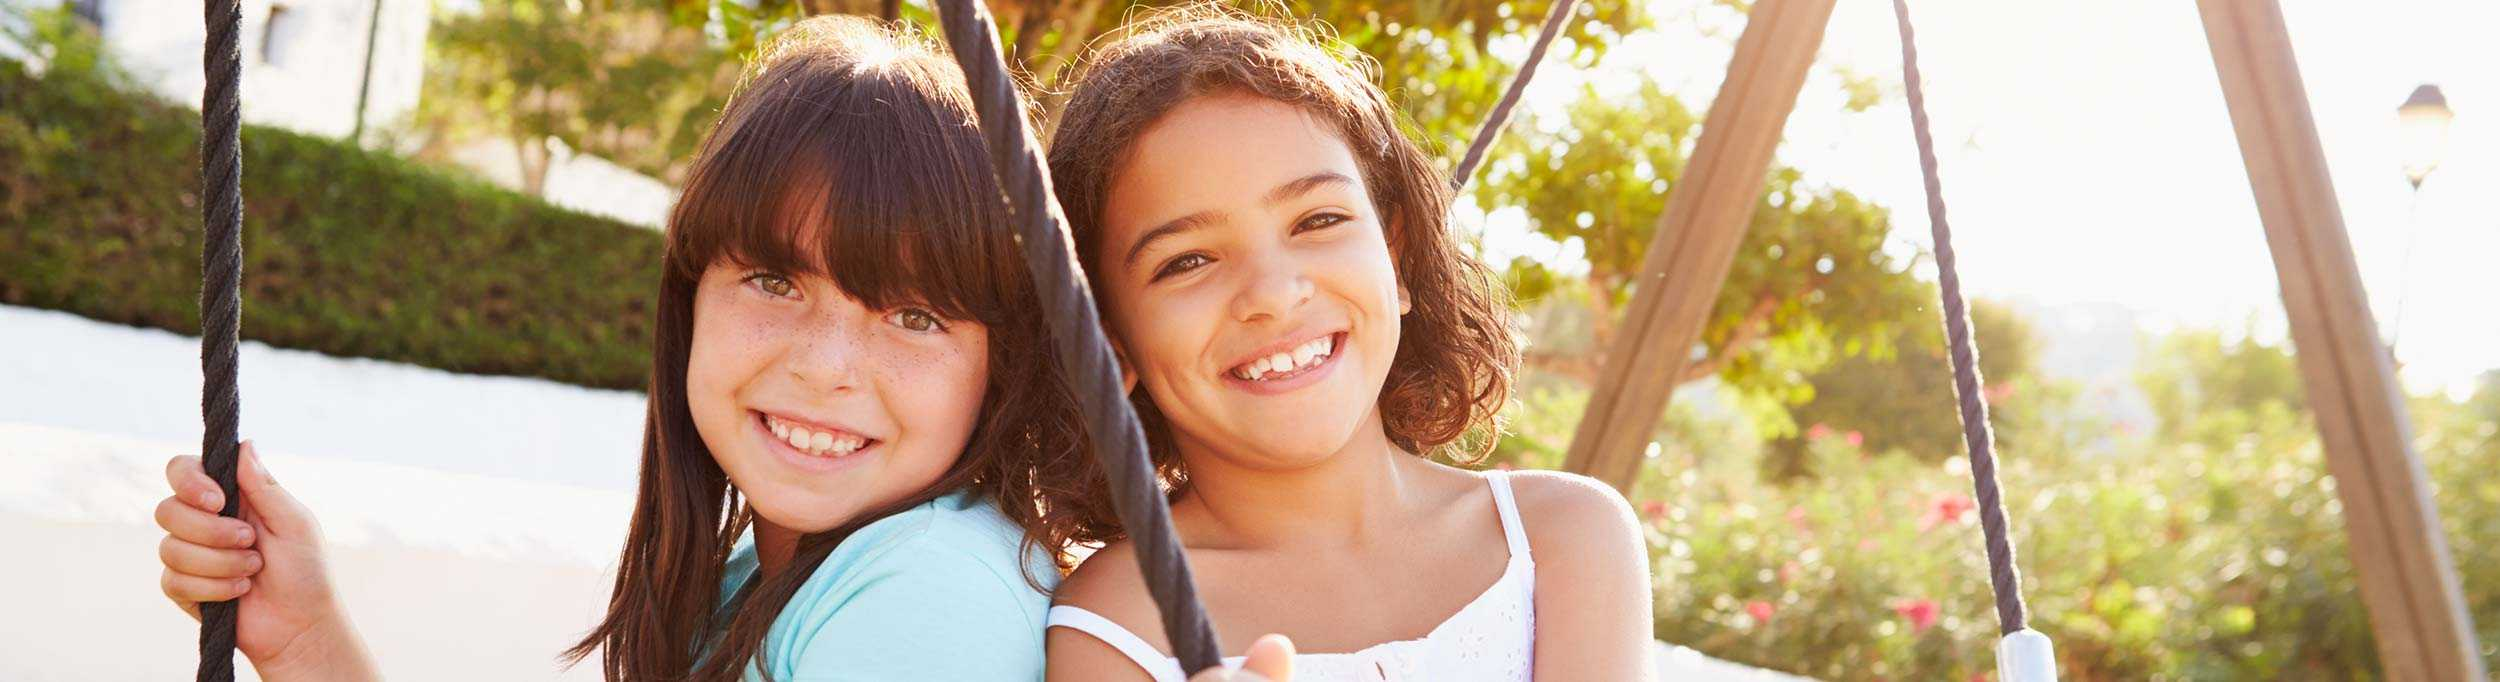 Two girls smiling on a tire swing